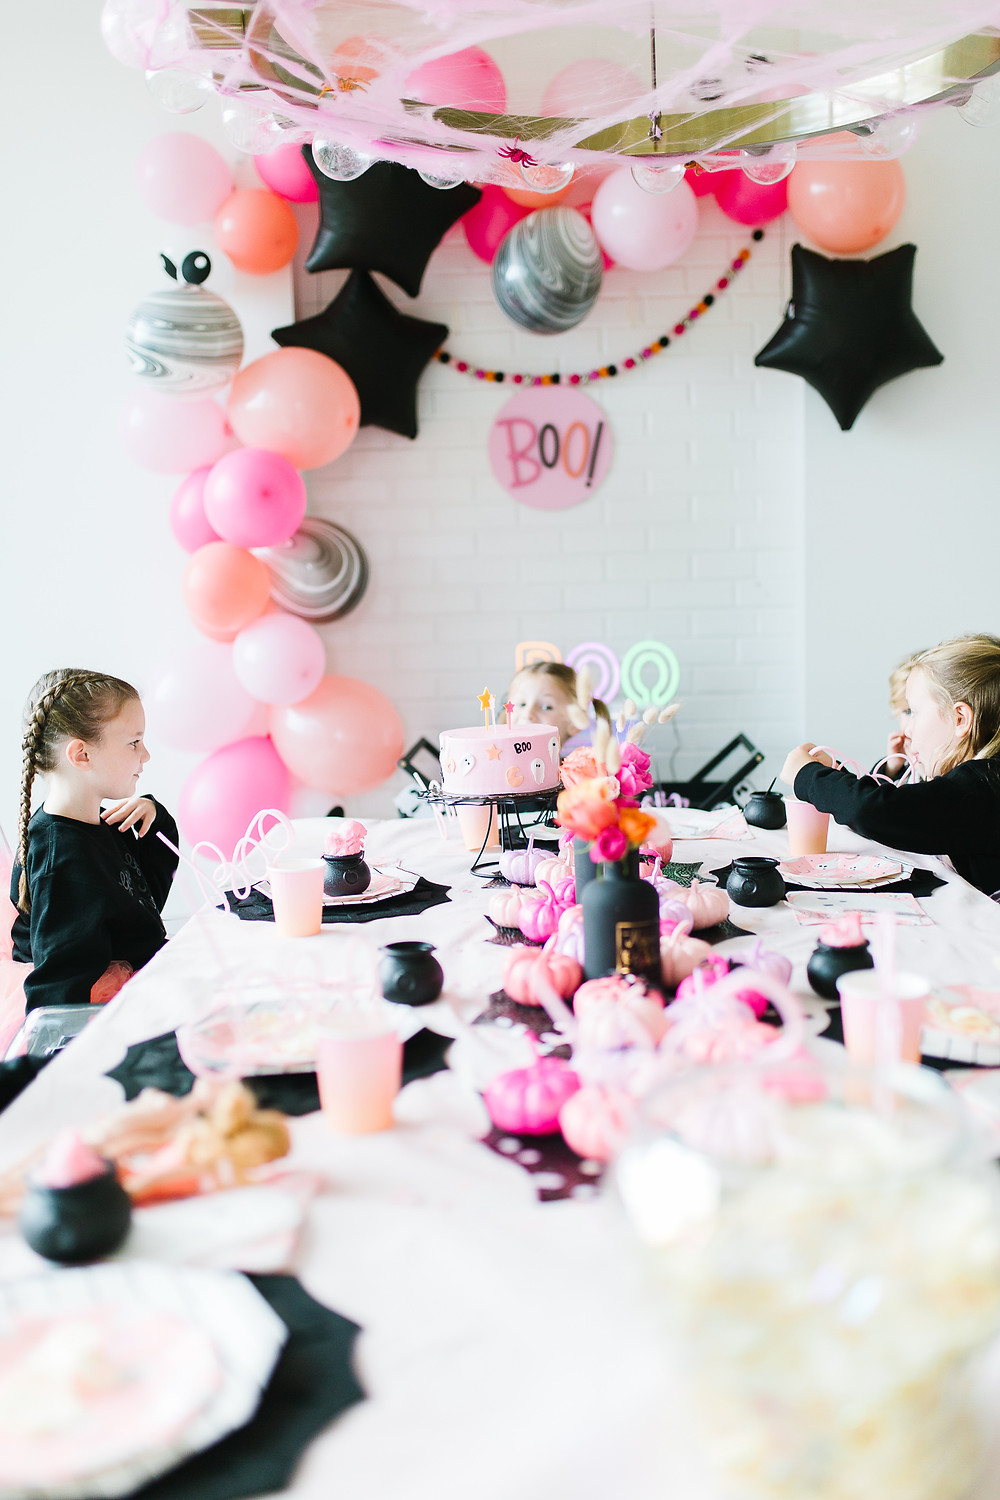 Ghoul gang halloween party tablescape of Halloween decor including pink and orange painted pumpkins, balloons and flowers.